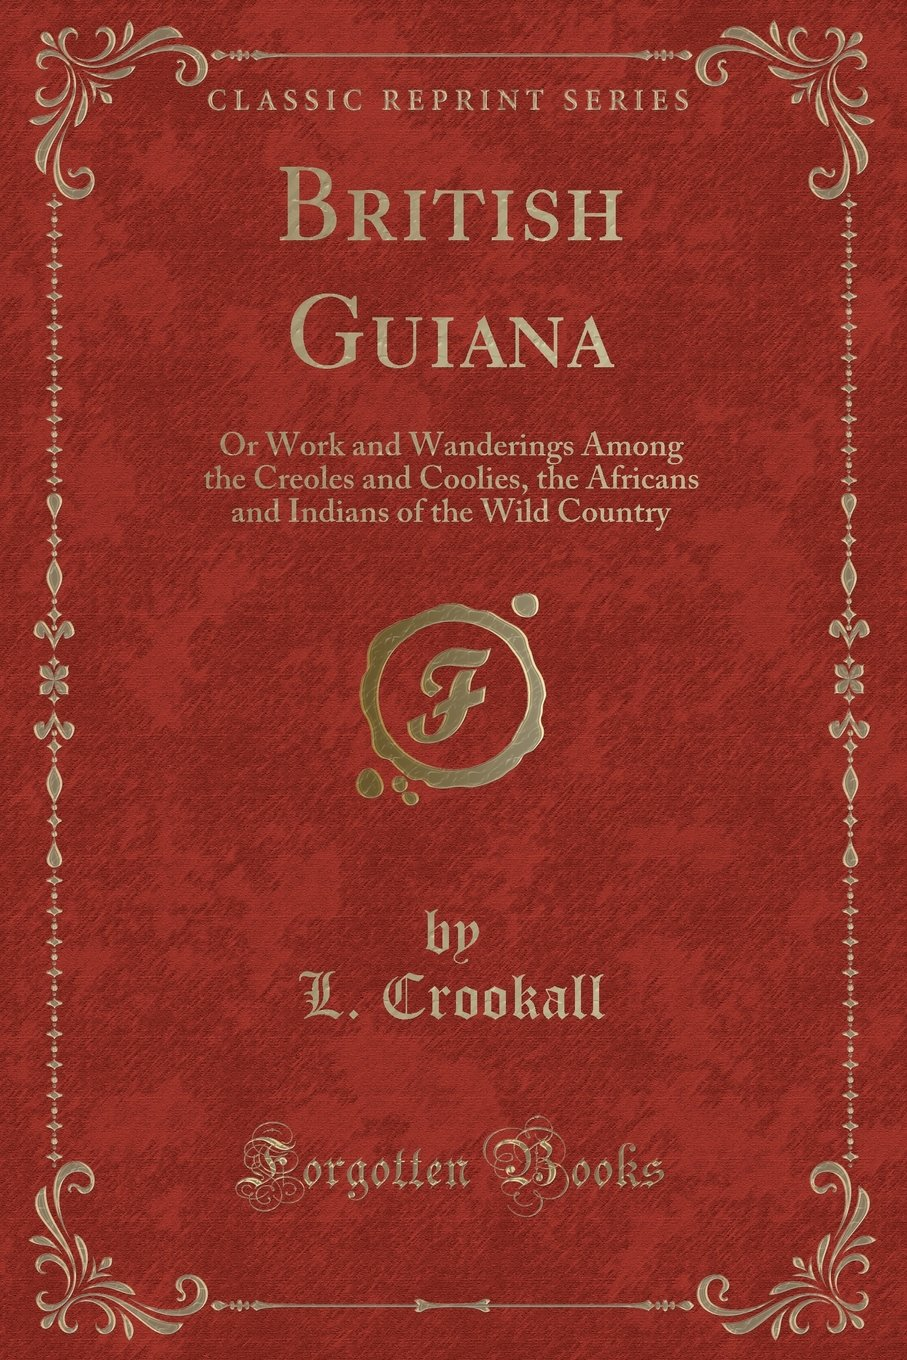 British Guiana: Or Work and Wanderings Among the Creoles and Coolies, the Africans and Indians of the Wild Country (Classic Reprint)